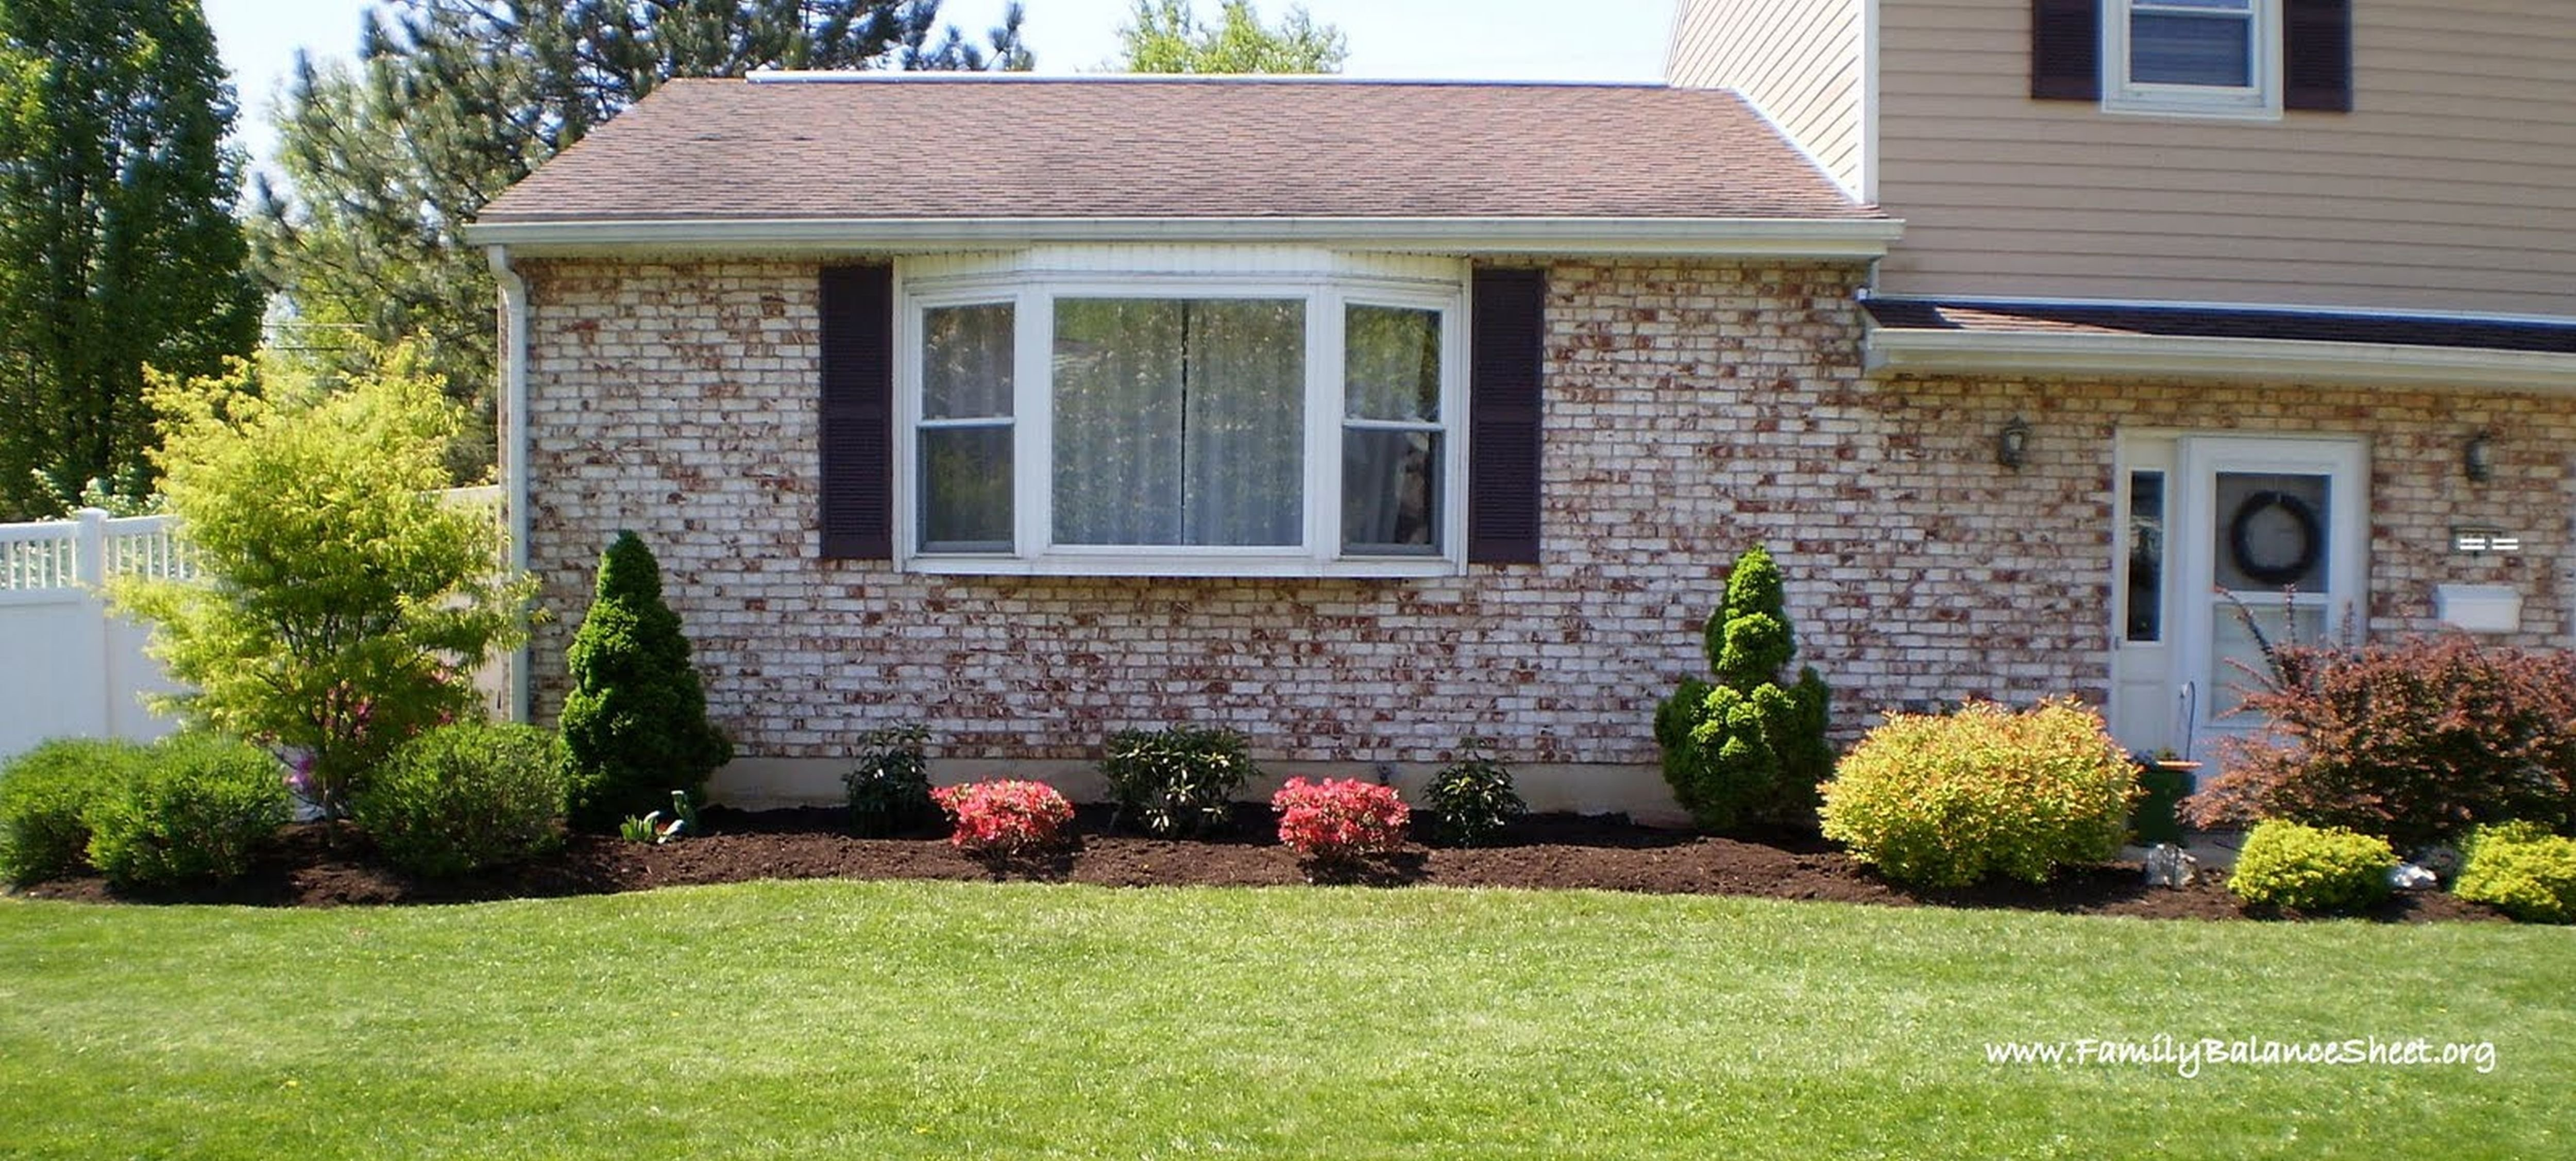 10 Elegant Simple Landscaping Ideas For Front Yards front yard unbelievable simple landscape design for front of house 1 2020